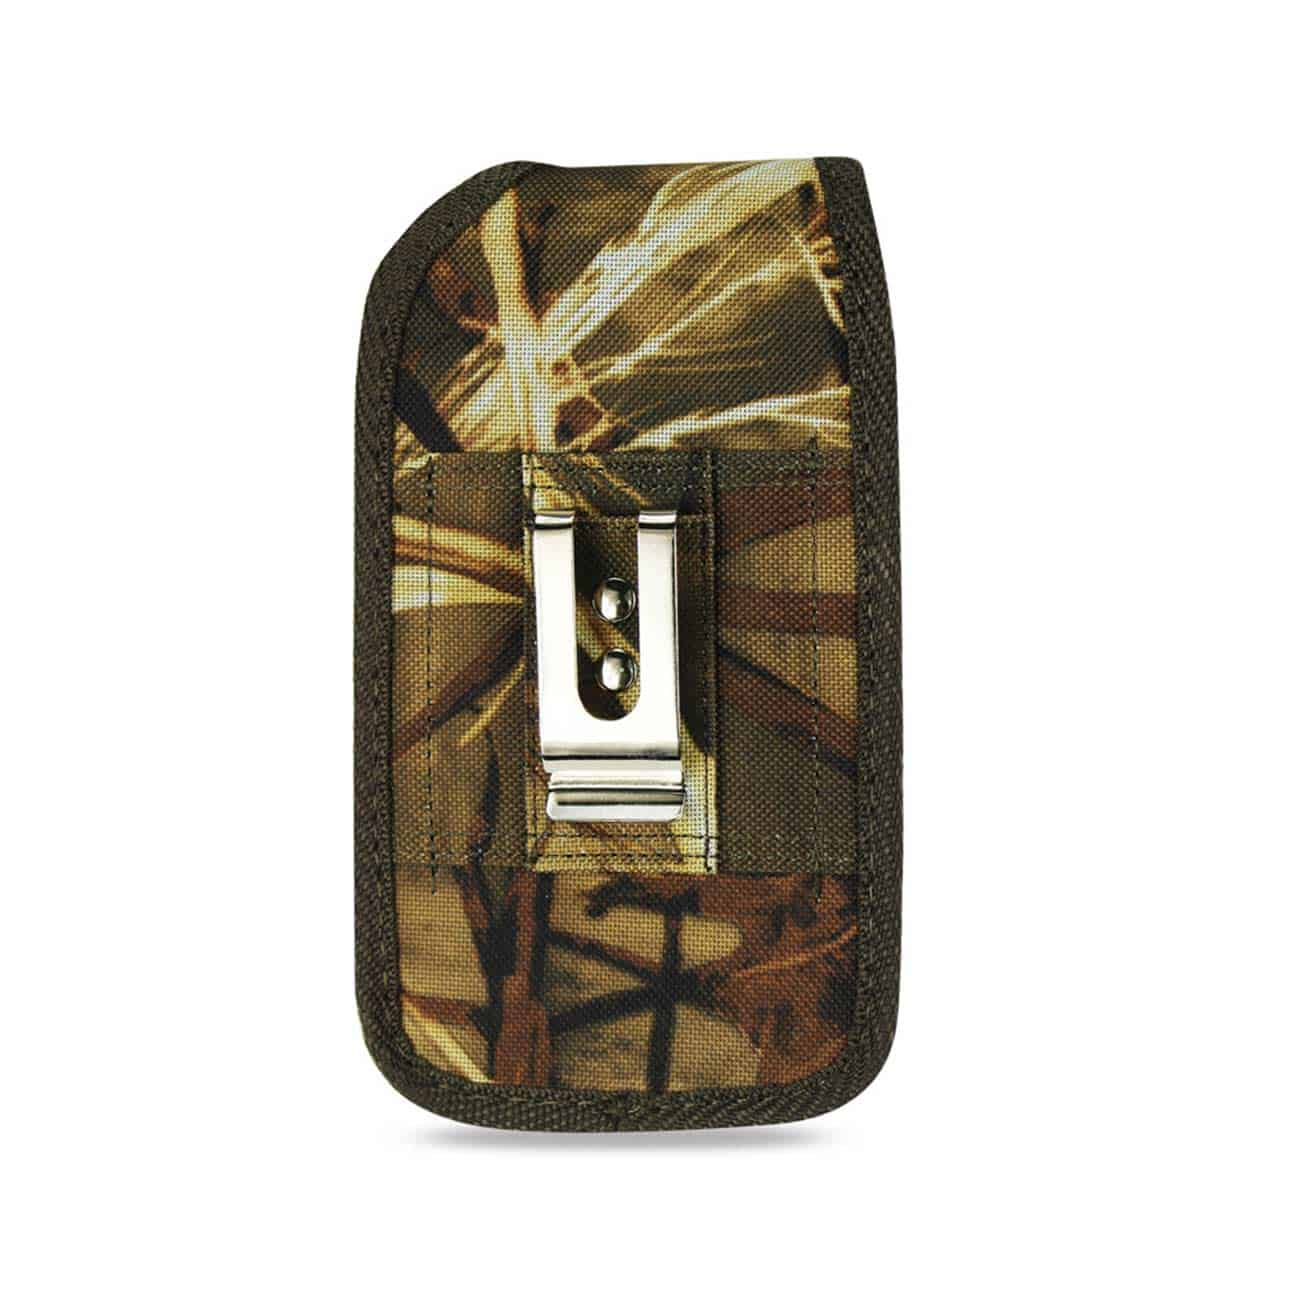 VERTICAL RUGGED MEDIAN SIZE POUCH WITH METAL BELT CLIP IN CAMOUFLAGE (3.5X2.05X1.1 INCHES)